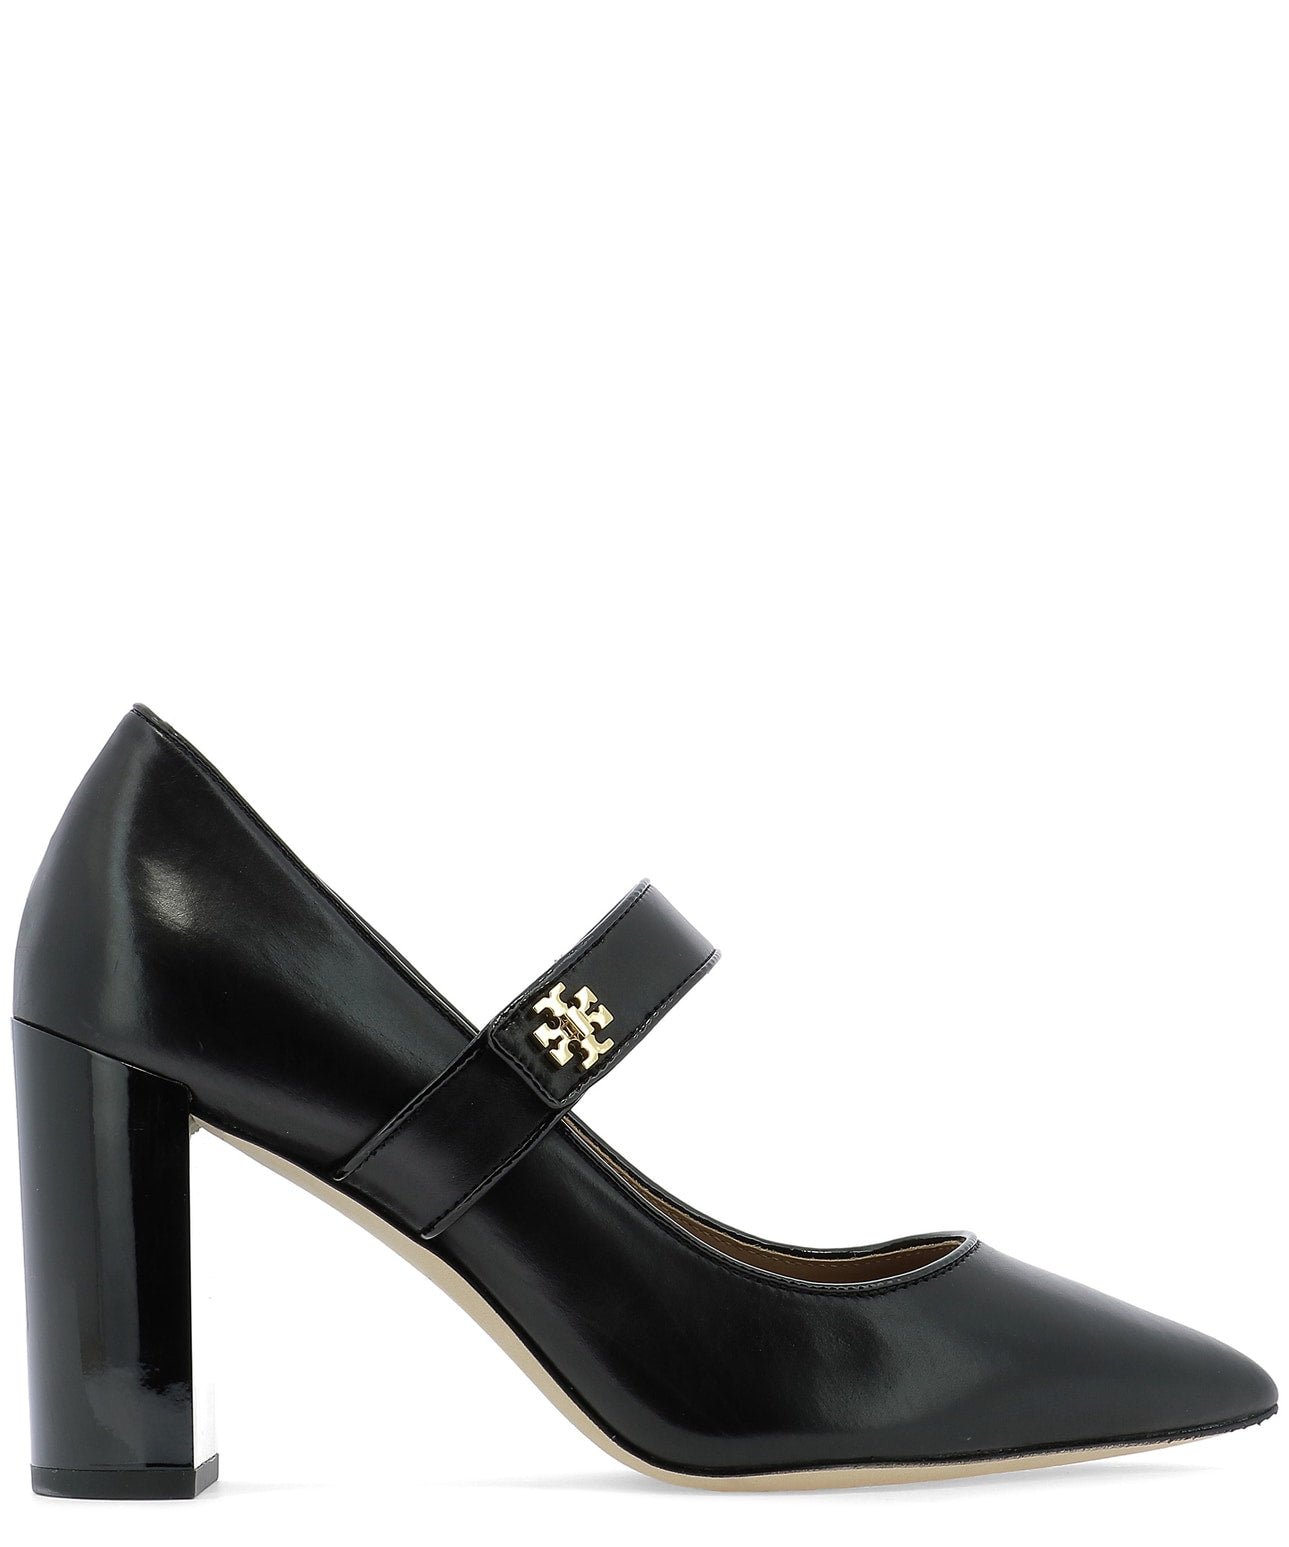 Tory Burch Pumps TORY BURCH KIRA STRAP PUMPS